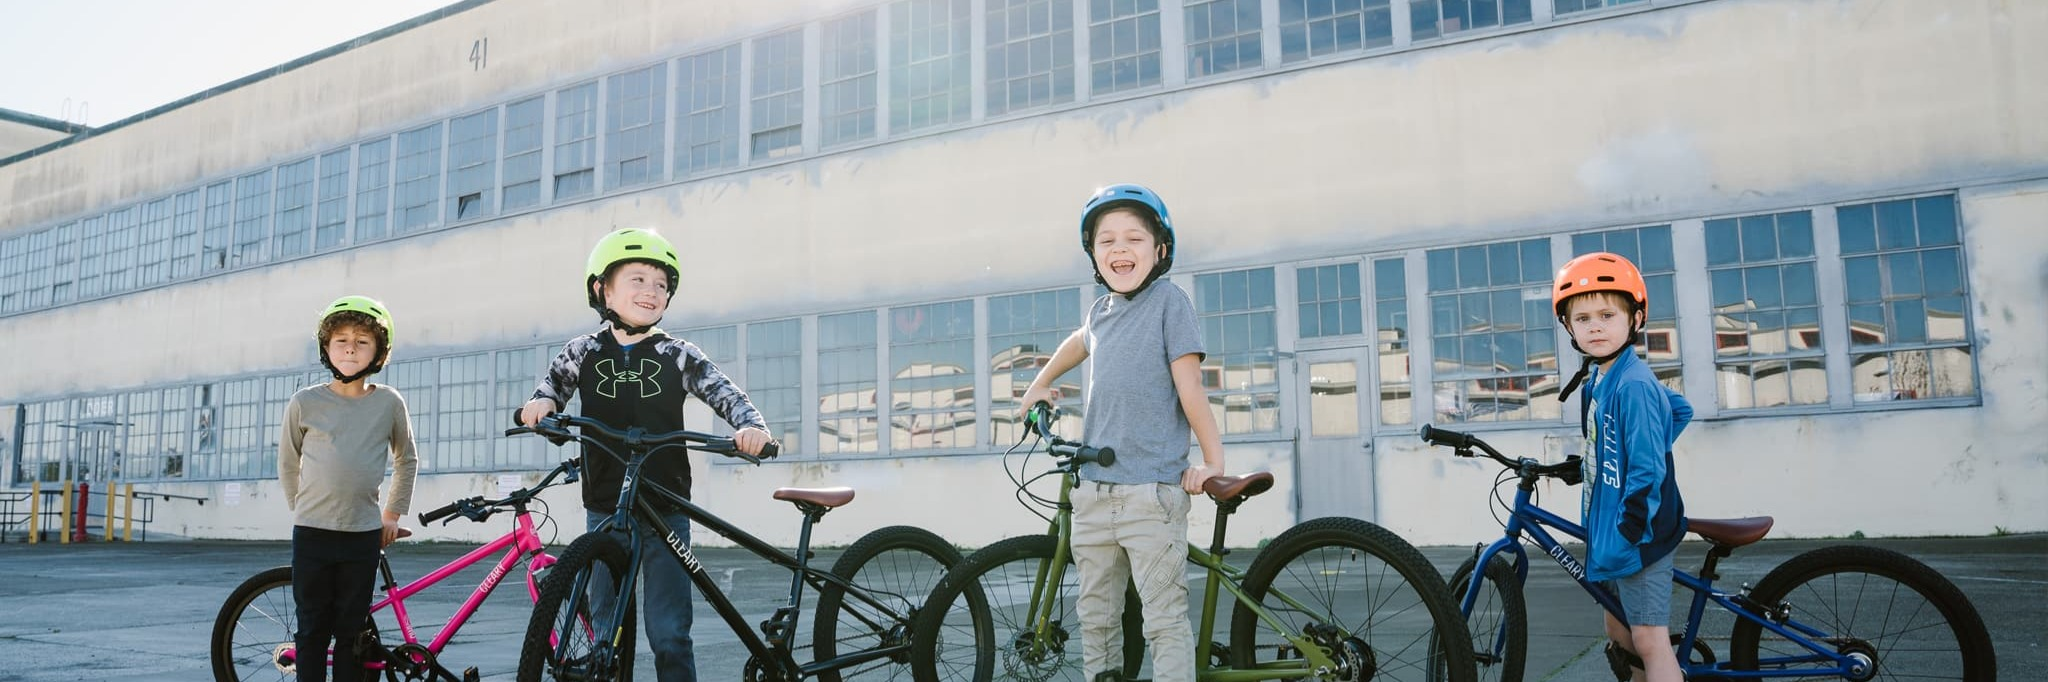 Four kids standing with their kids bikes in a warehouse area